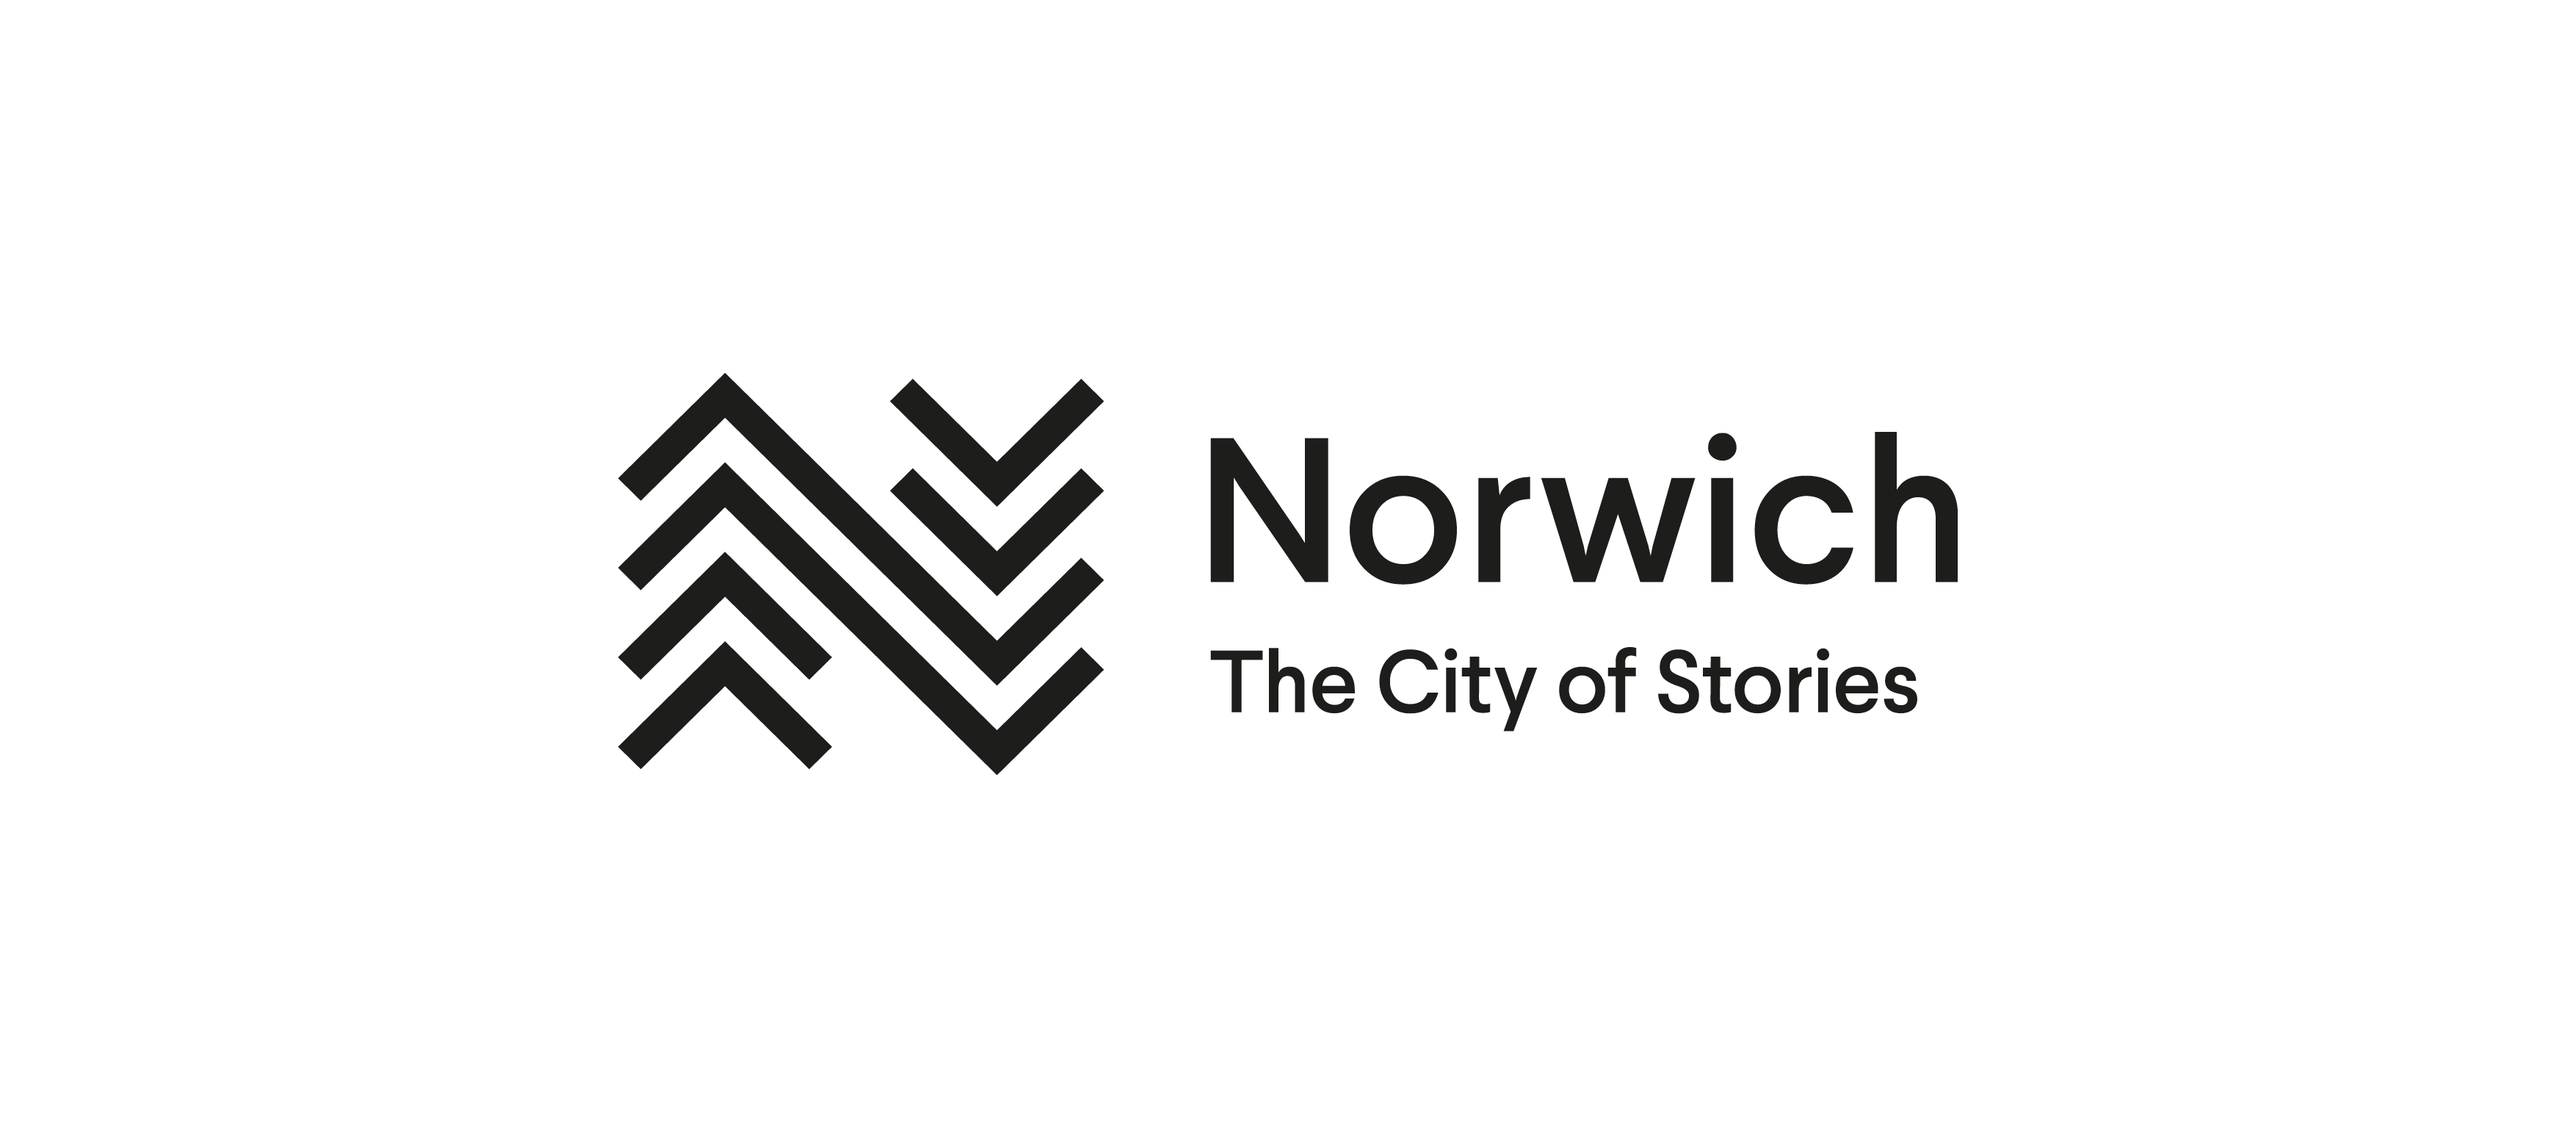 Norwich. The City of Stories logo